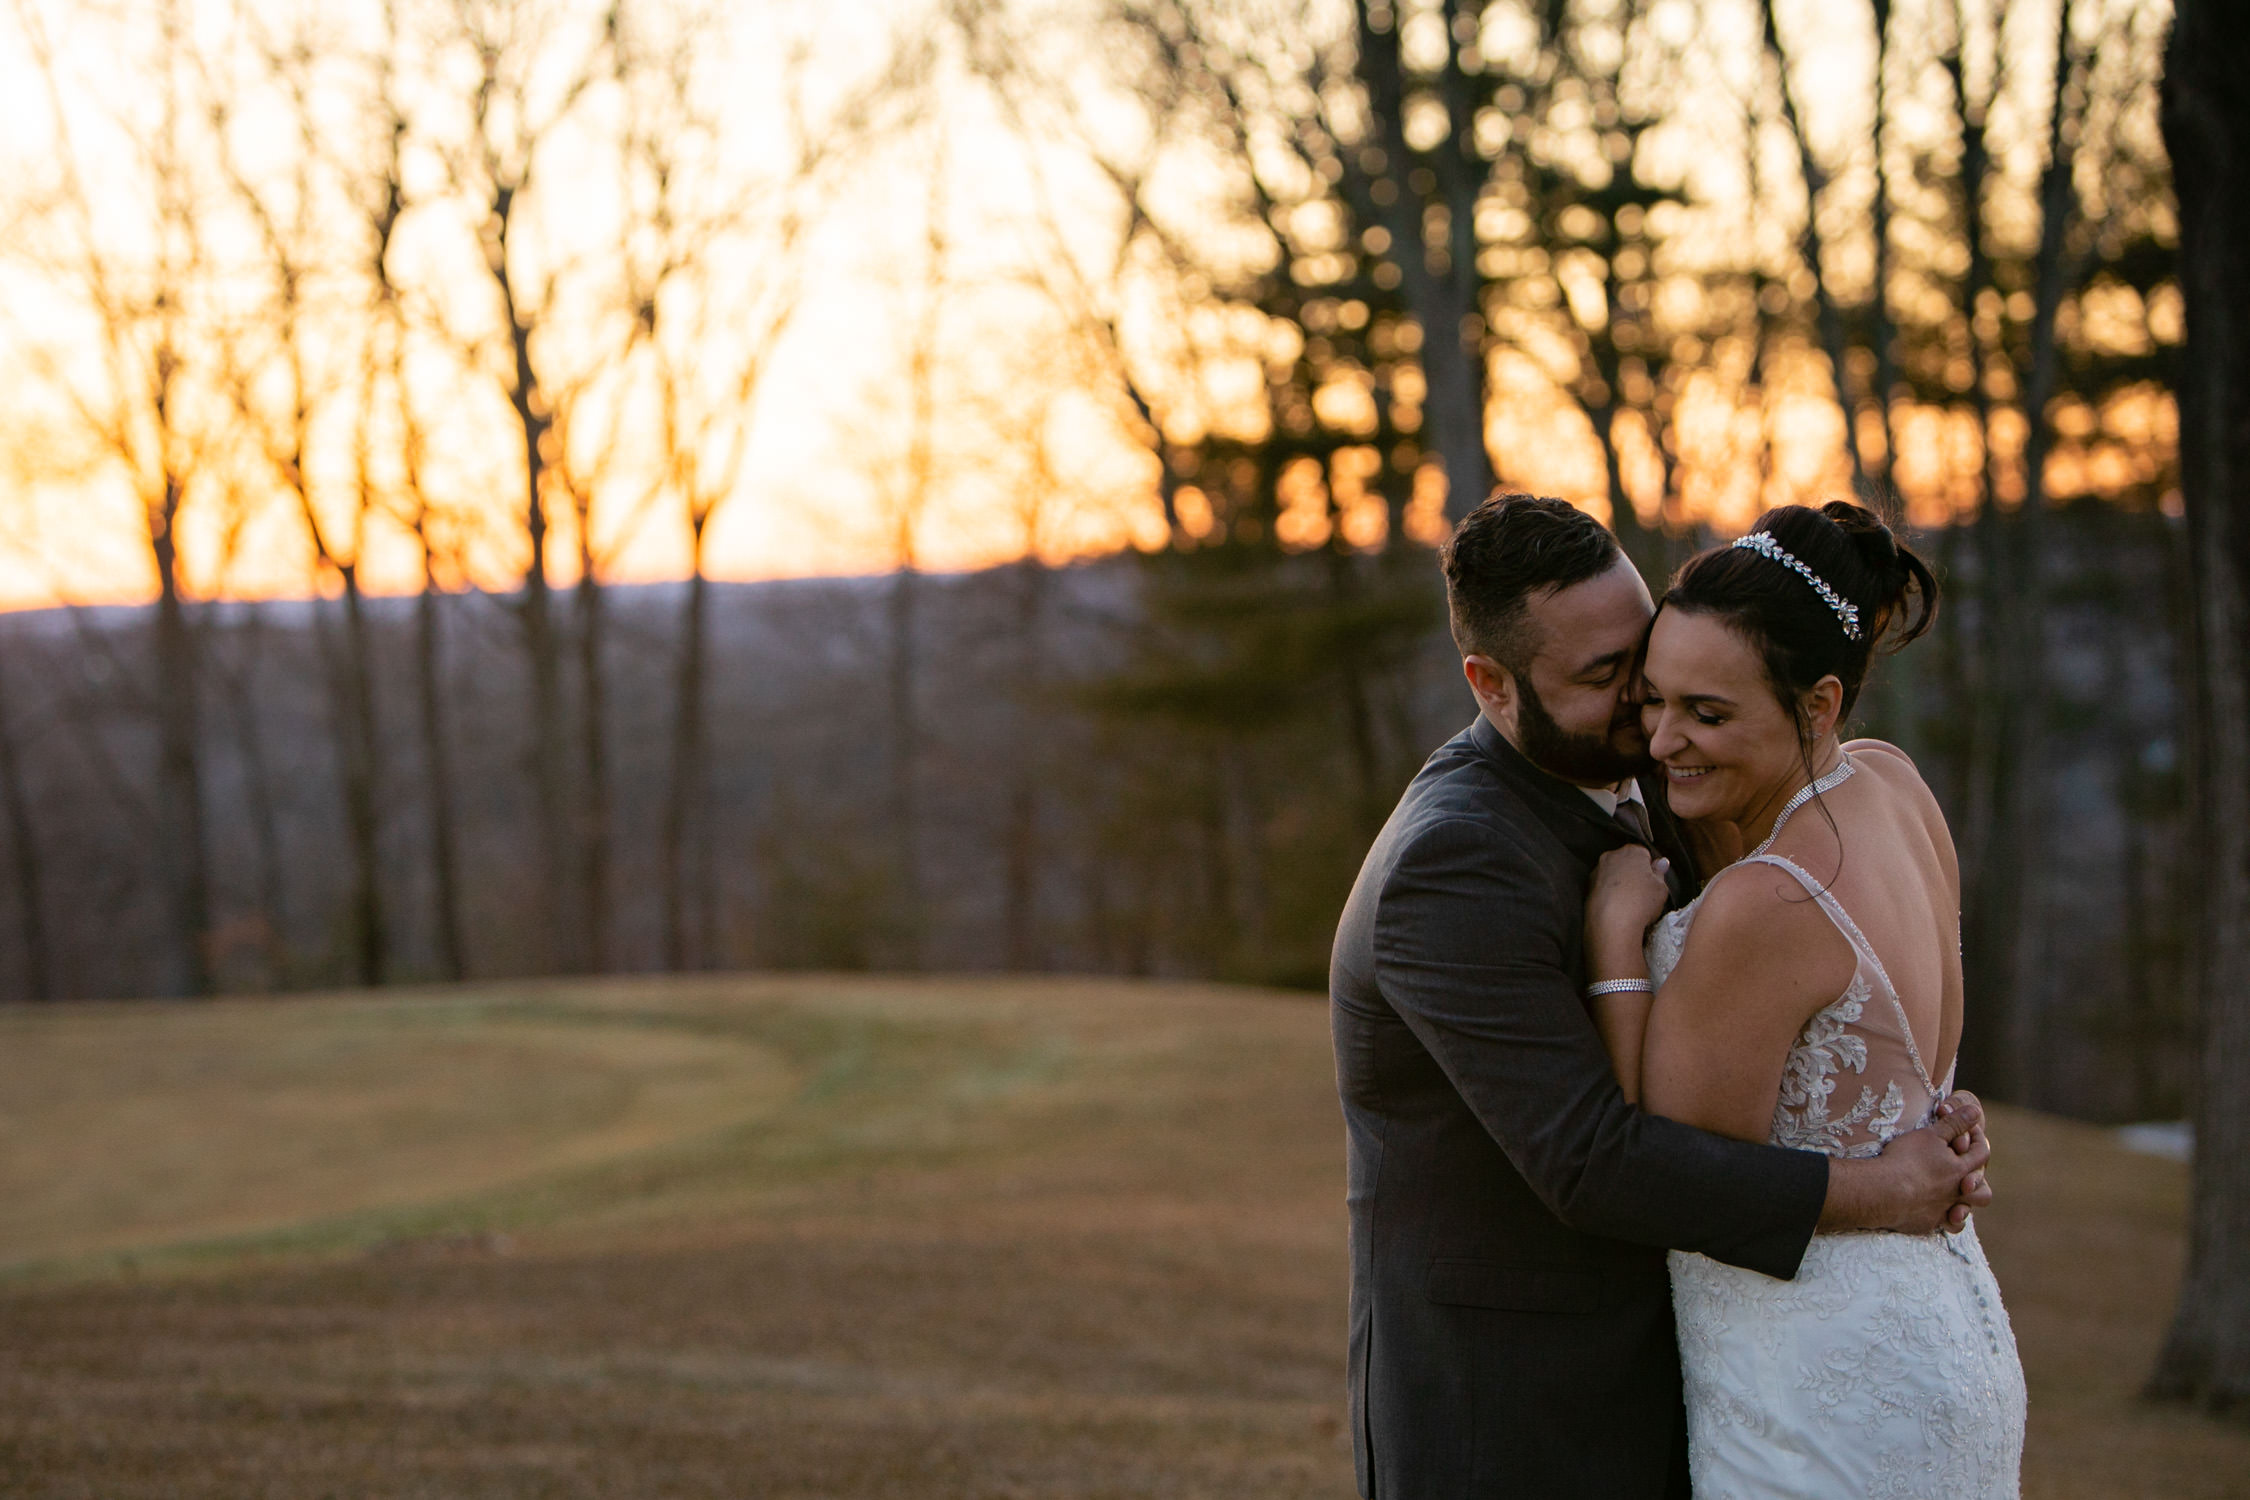 Worcester wedding photographer - High Fields Country Club wedding